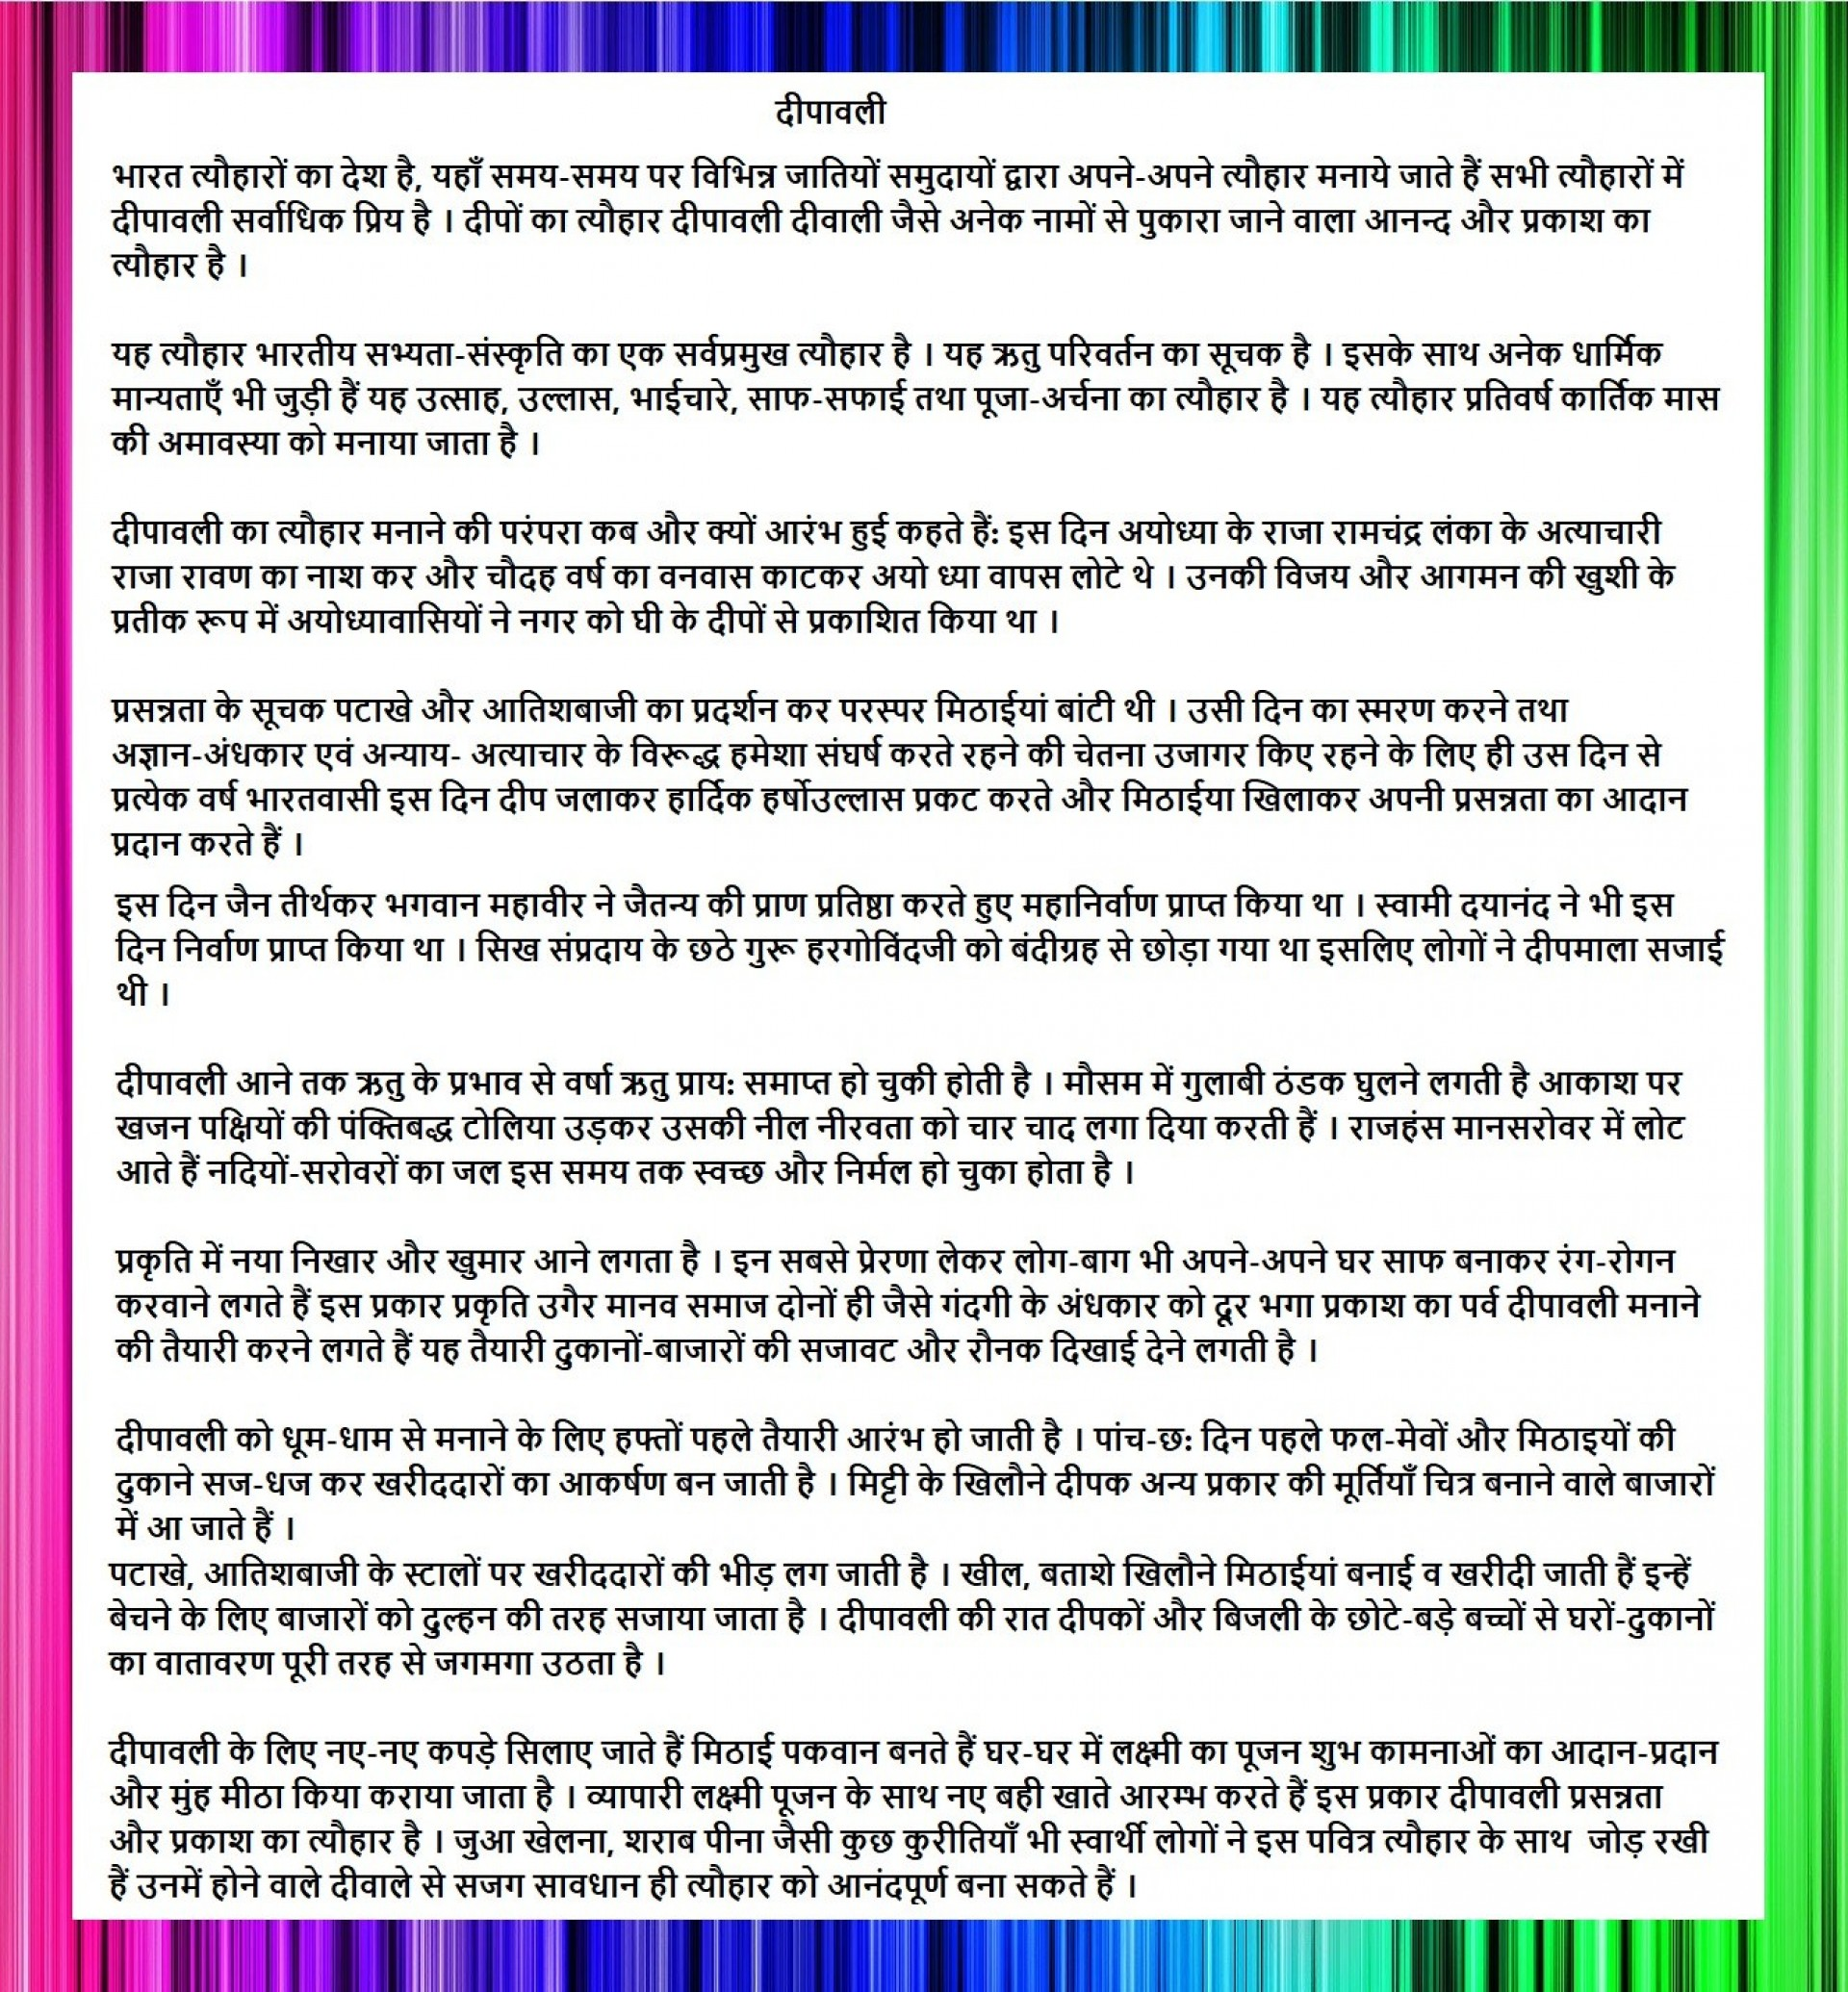 011 Essay Example Happy Diwali For School Students Inresizeu003d5602c604 Fantastic In Hindi On 50 Words Class Short 3 1920